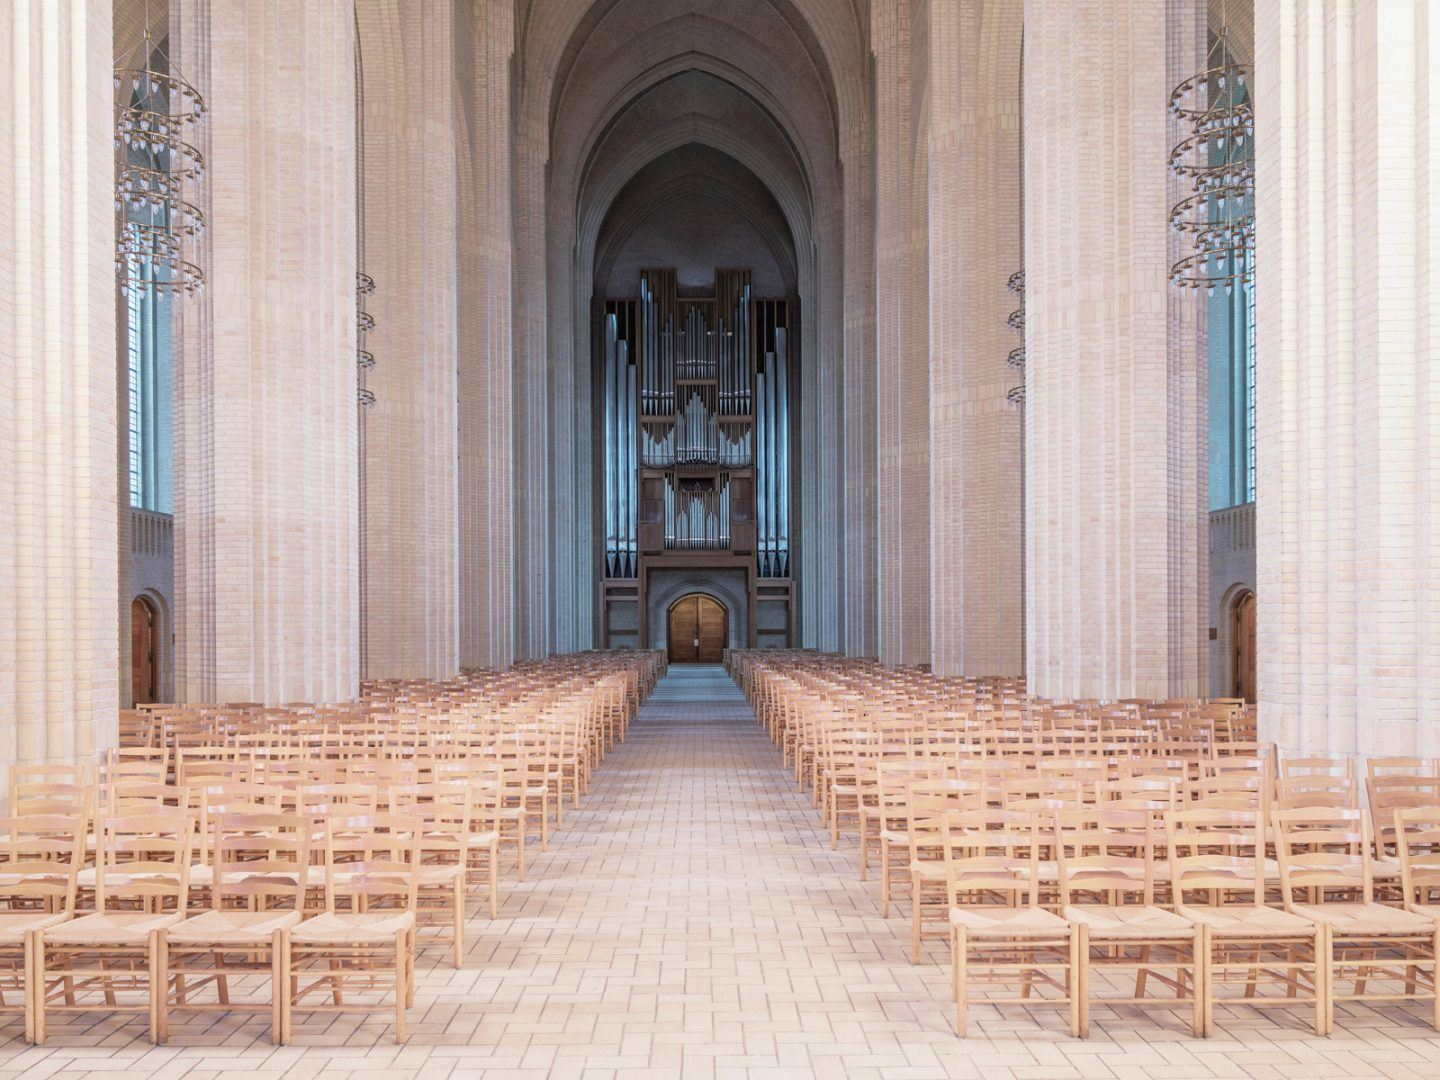 IGNANT-Photography-Ludwig-Favre-Copenhagen-Church-05